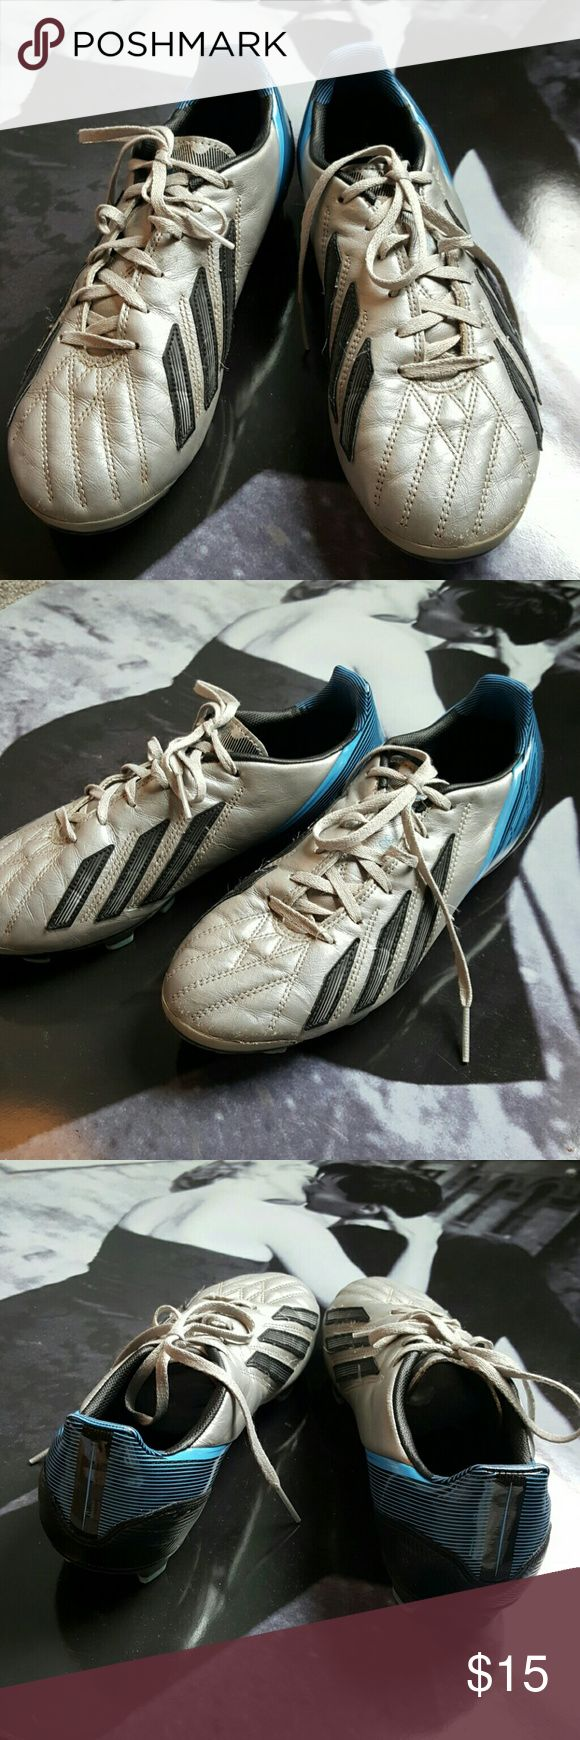 adidas f30 Soccer Cleats Some signs of wear, but still a lot of miles left in them. A great pair of cleats. adidas Shoes Athletic Shoes